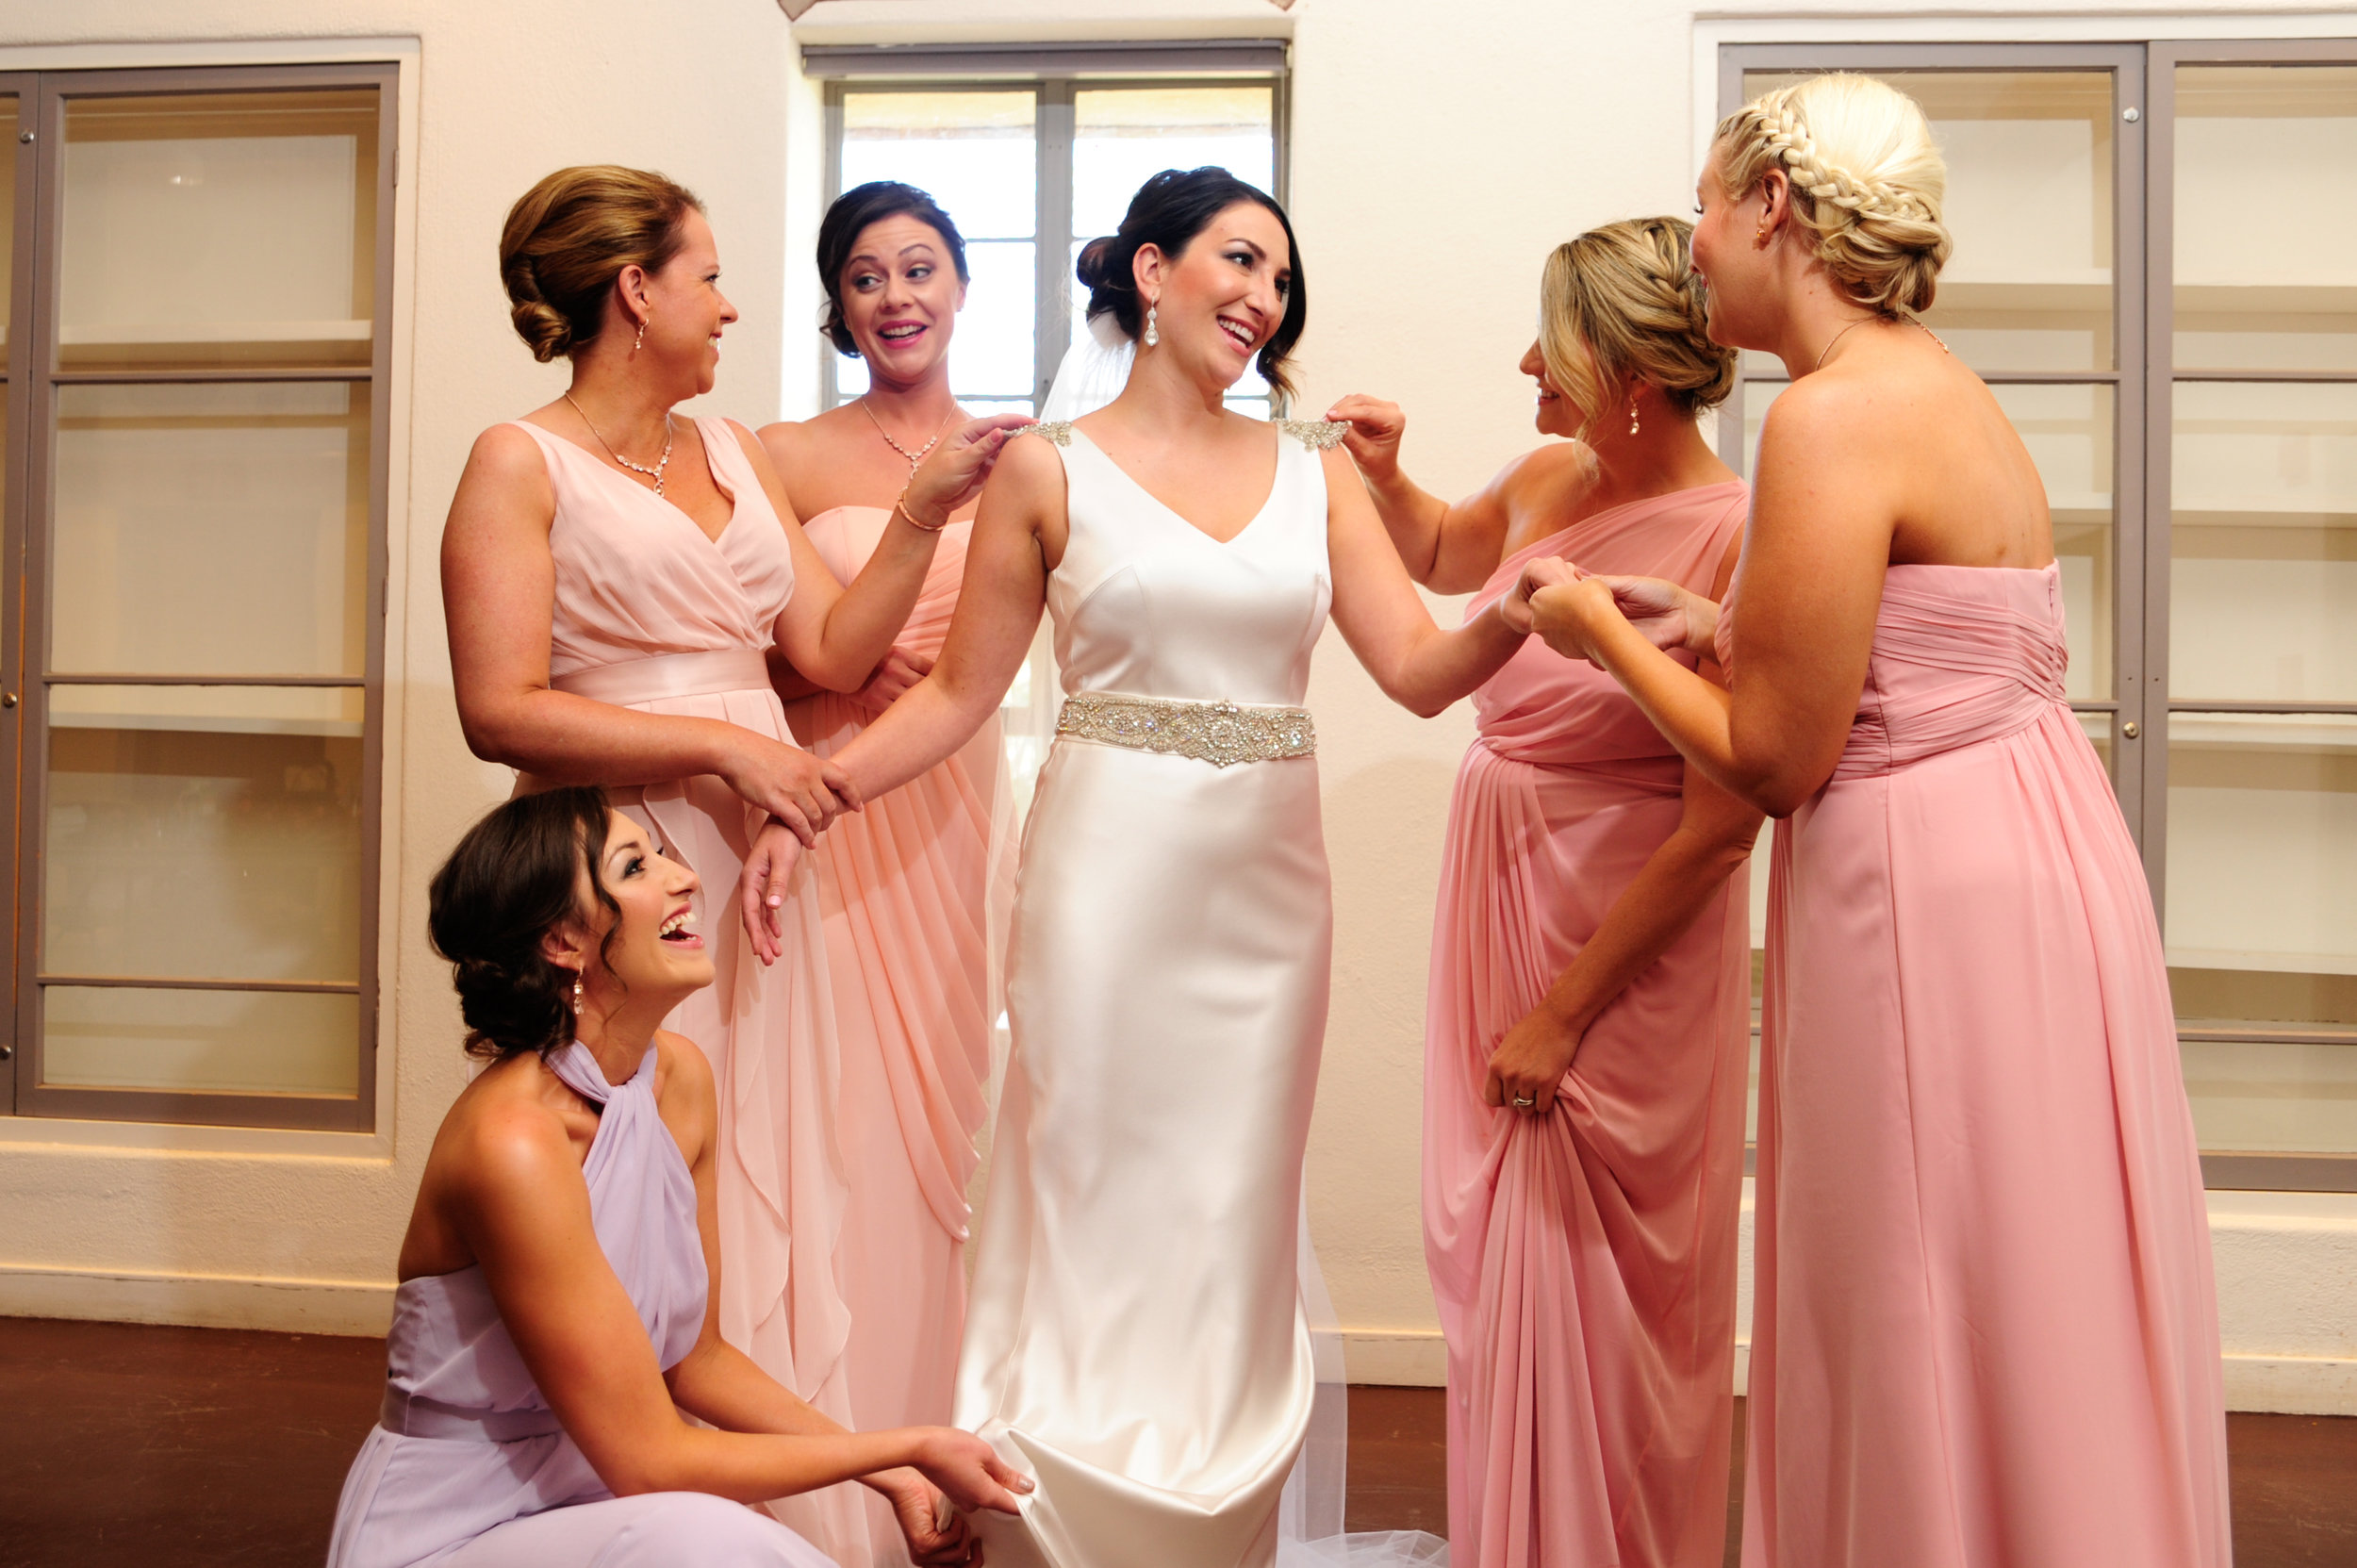 5 getting ready photos bride putting on her dress photos bride and brides maid getting ready photos Mod Wed Photography Life Design Events.jpg